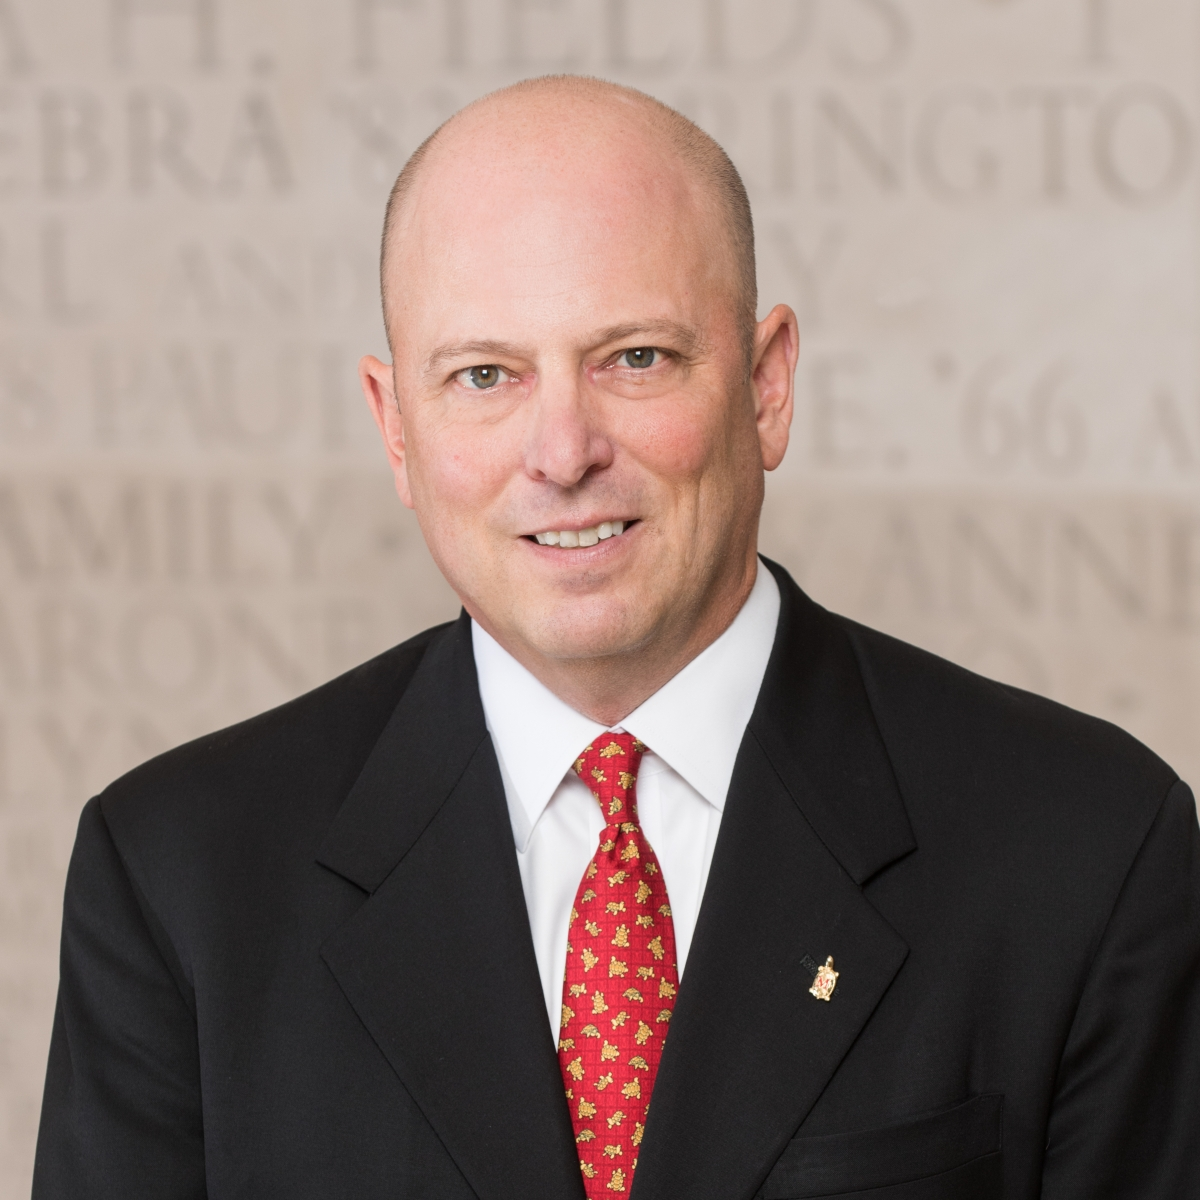 James G. Spencer '90